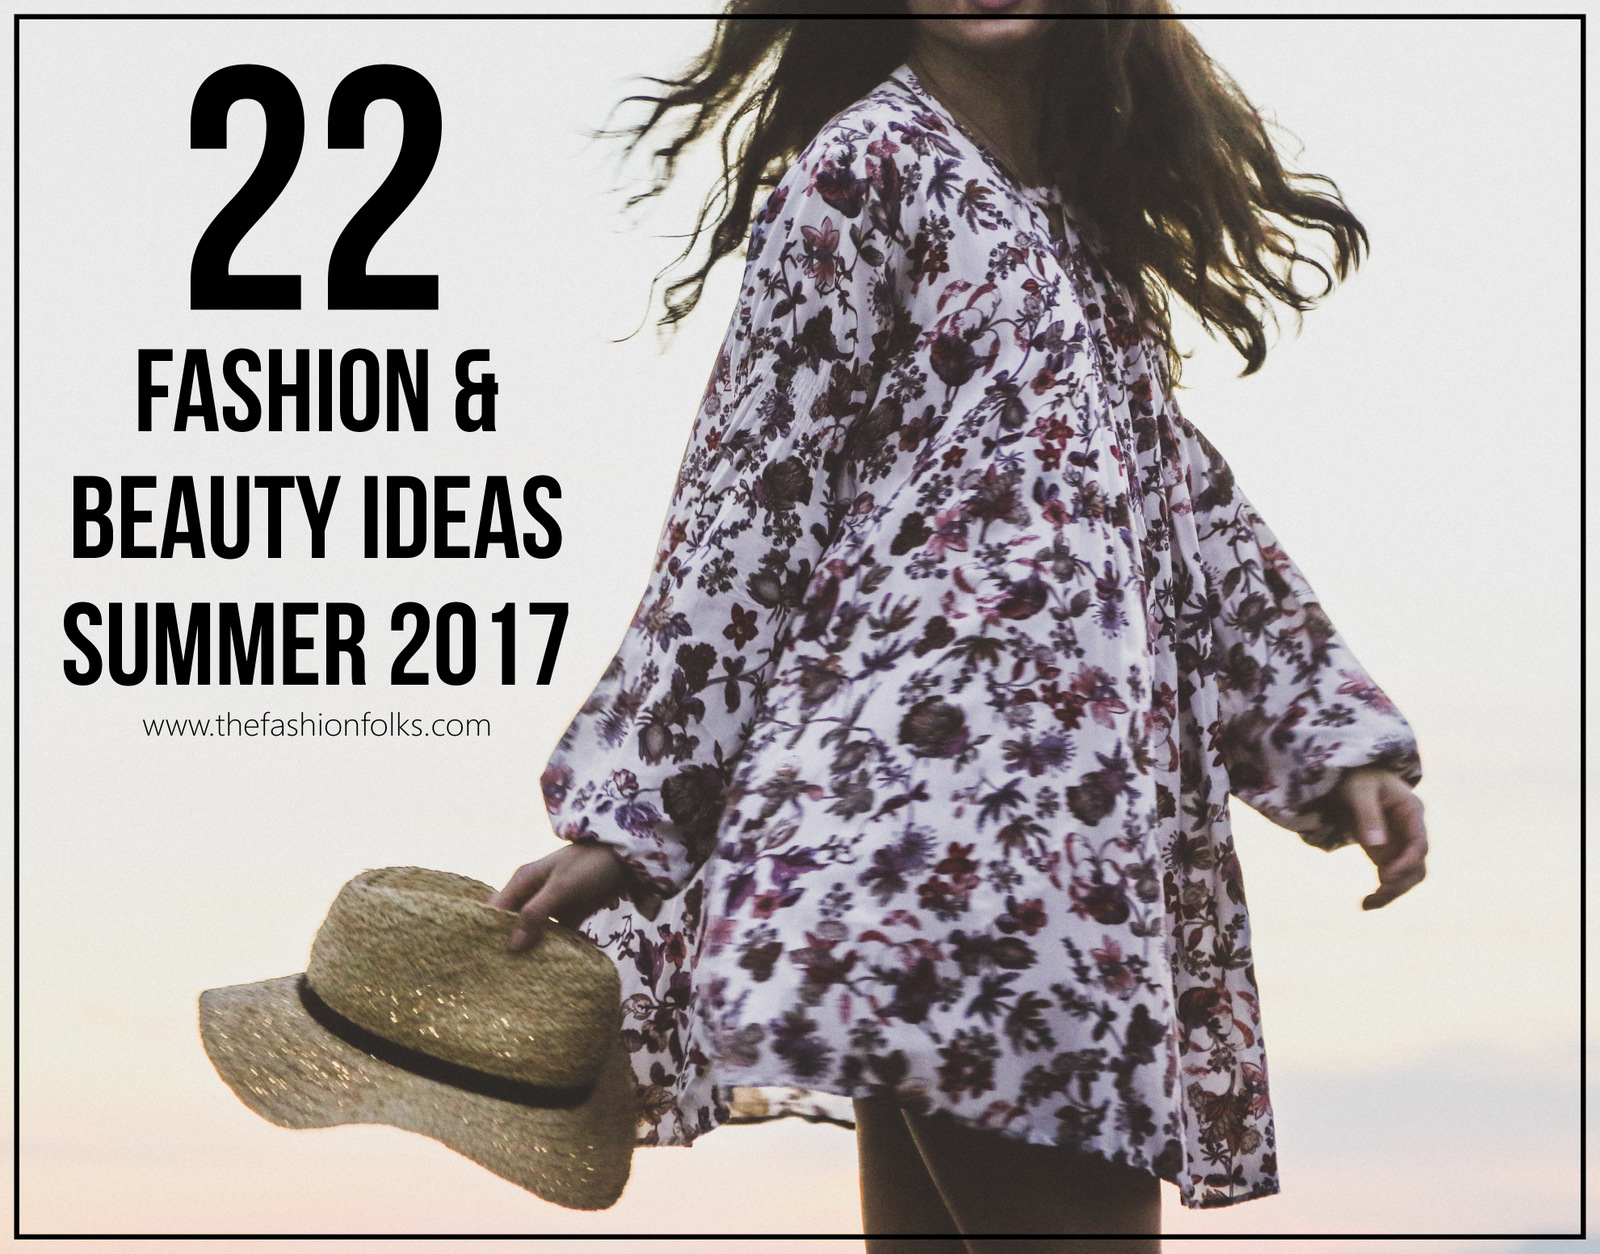 22 Beauty And Fashion Ideas Summer 2017 | The Fashion Folks